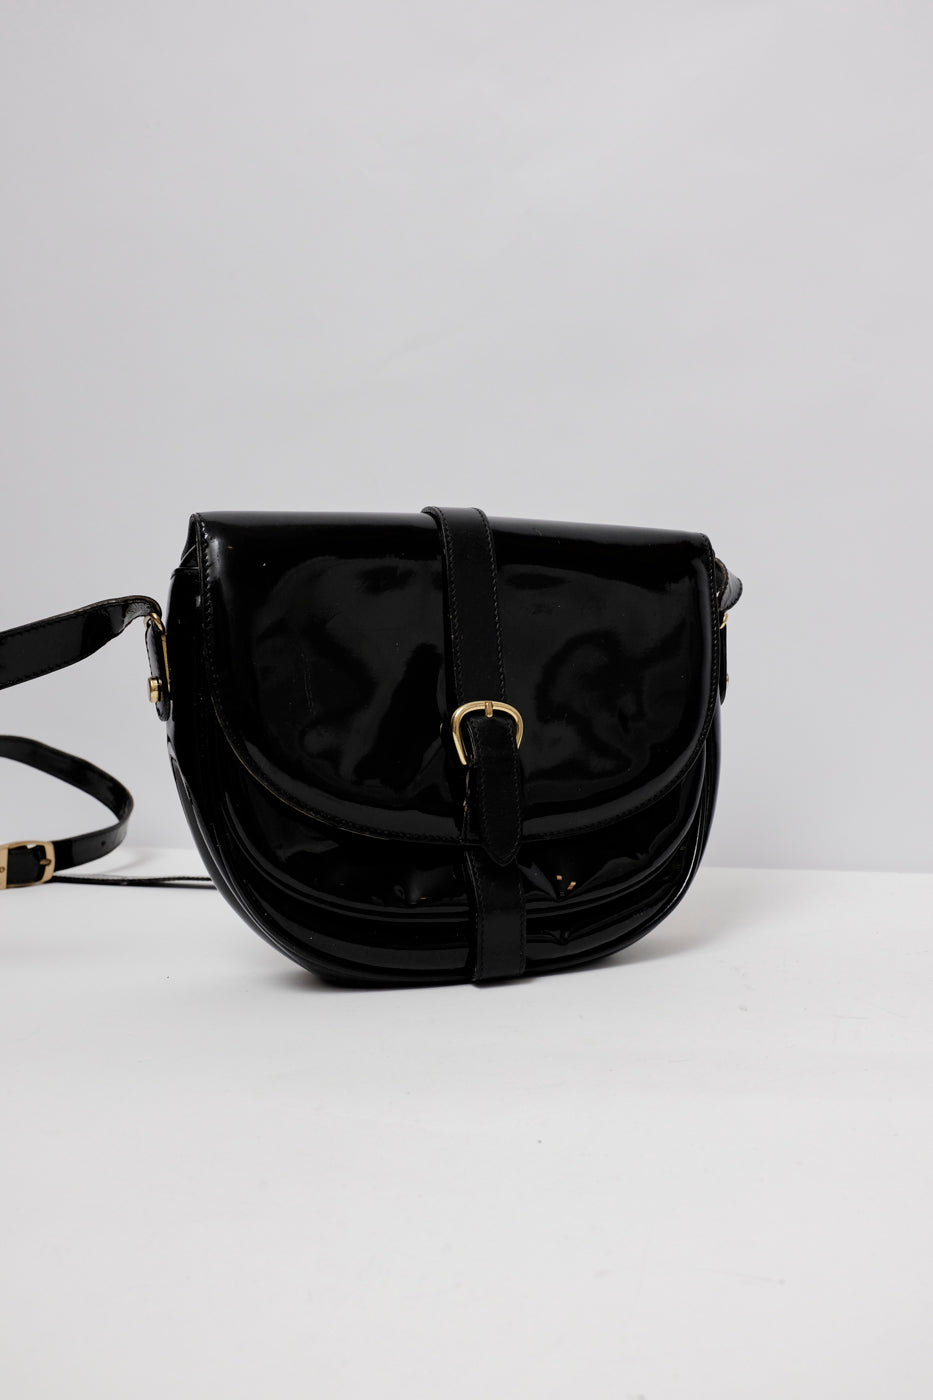 0005_PATENT LEATHER AIGNER BAG